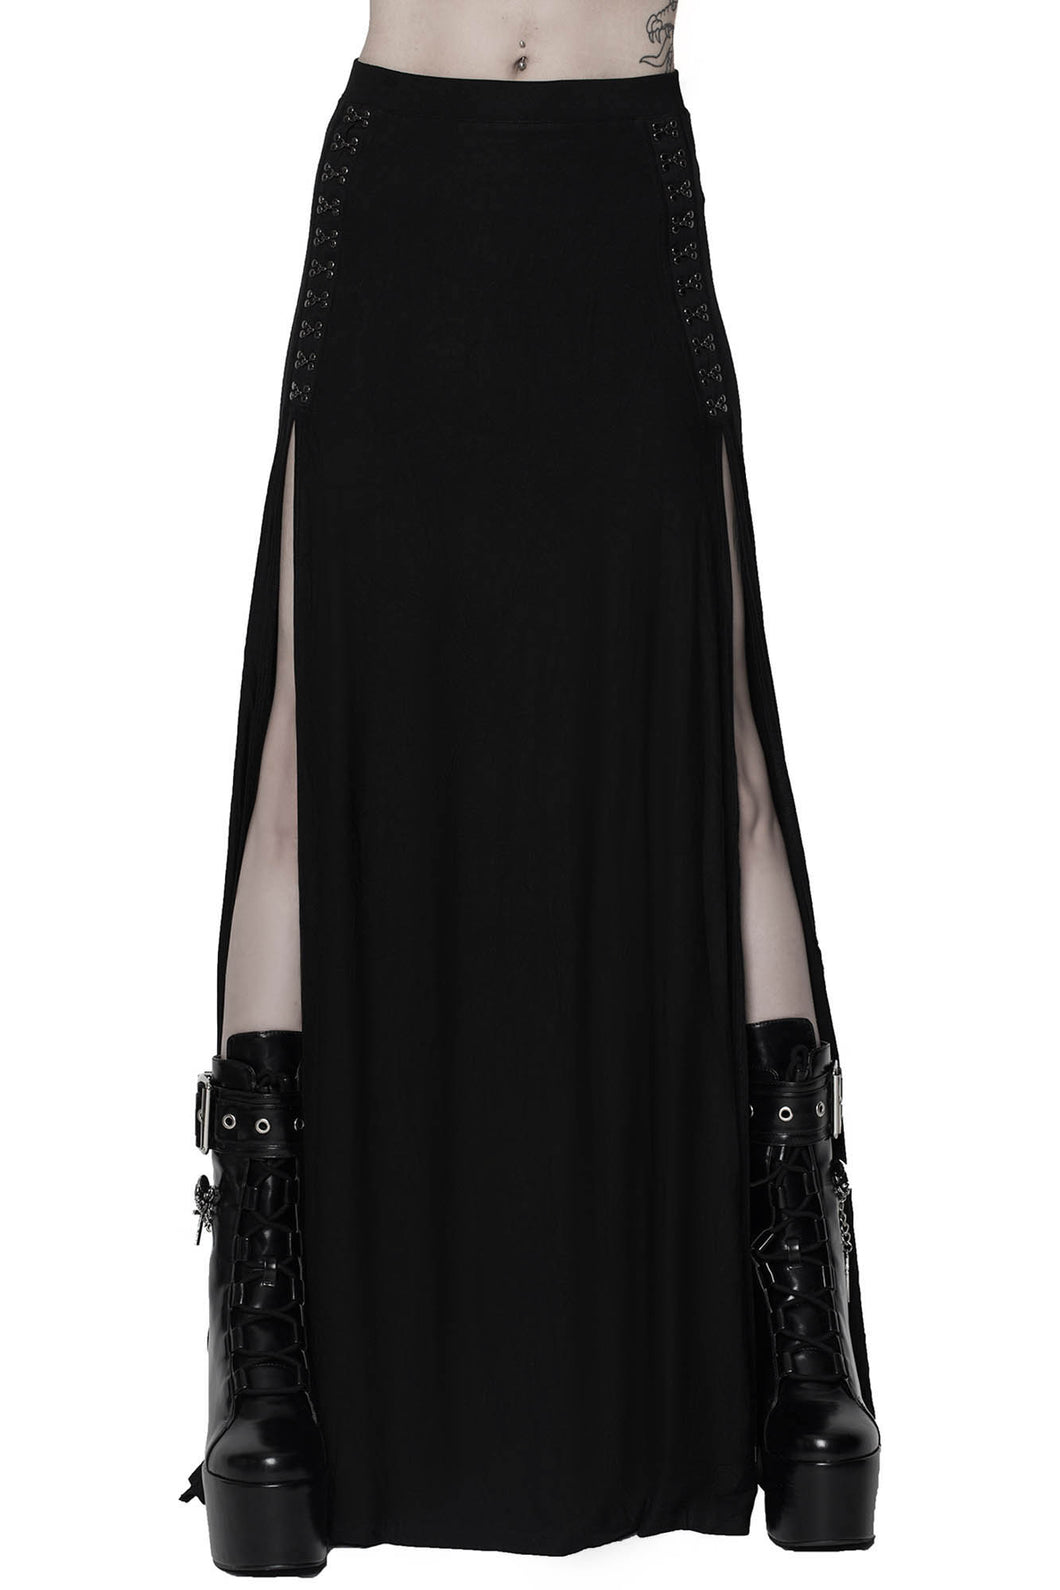 Killstar Snarl Maxi Skirt with High Slits - Kate's Clothing